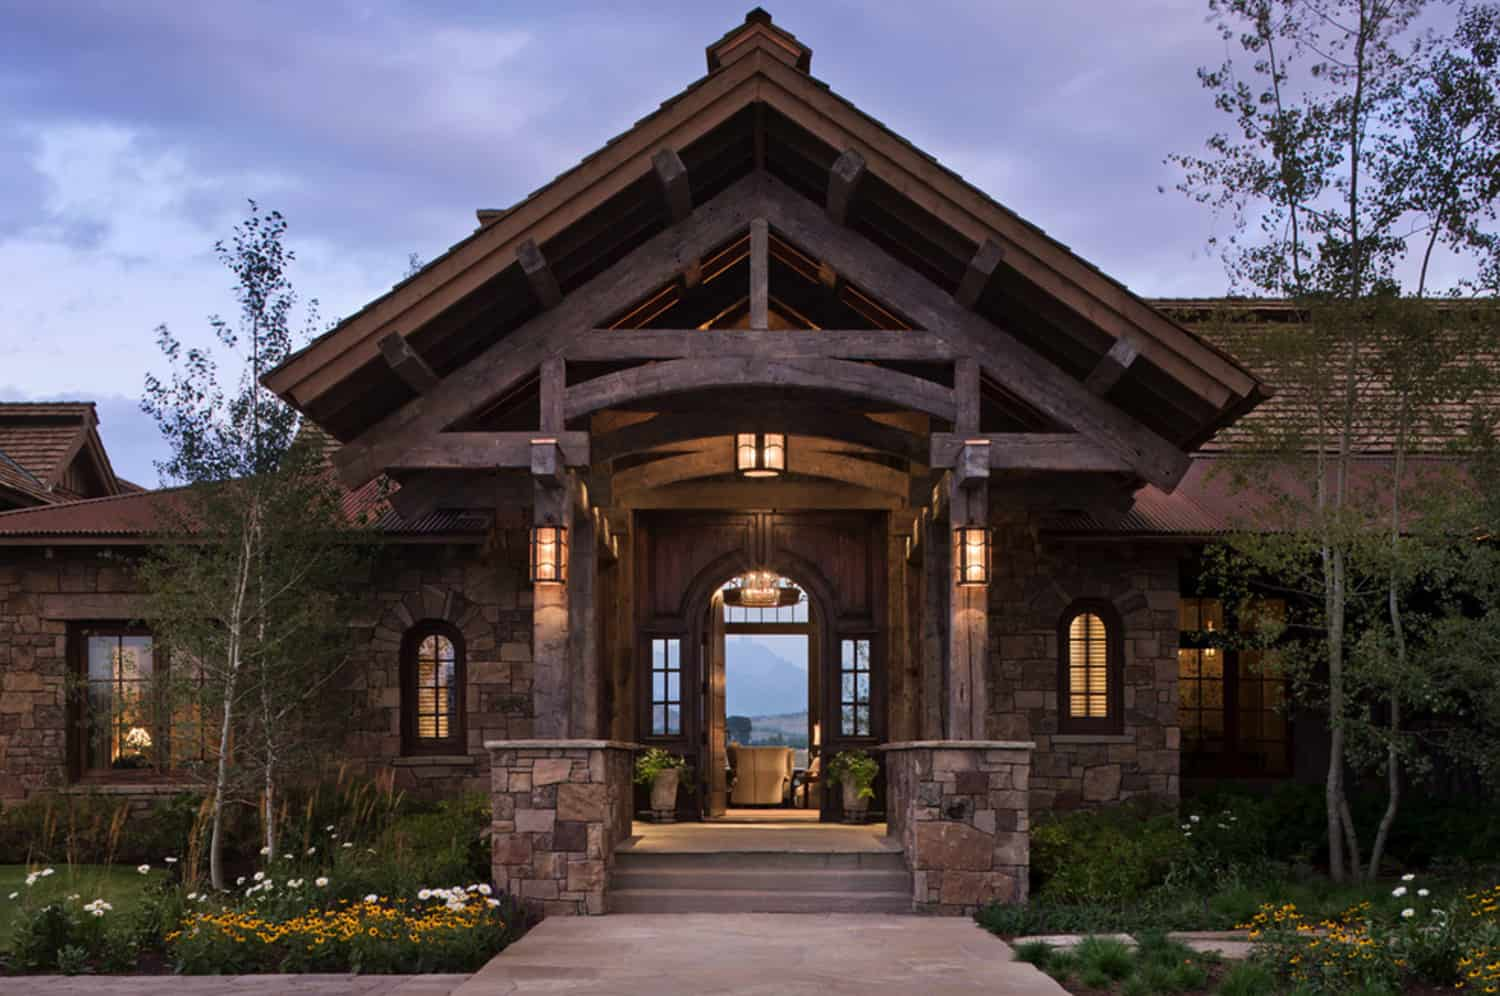 residence-rustic-entry